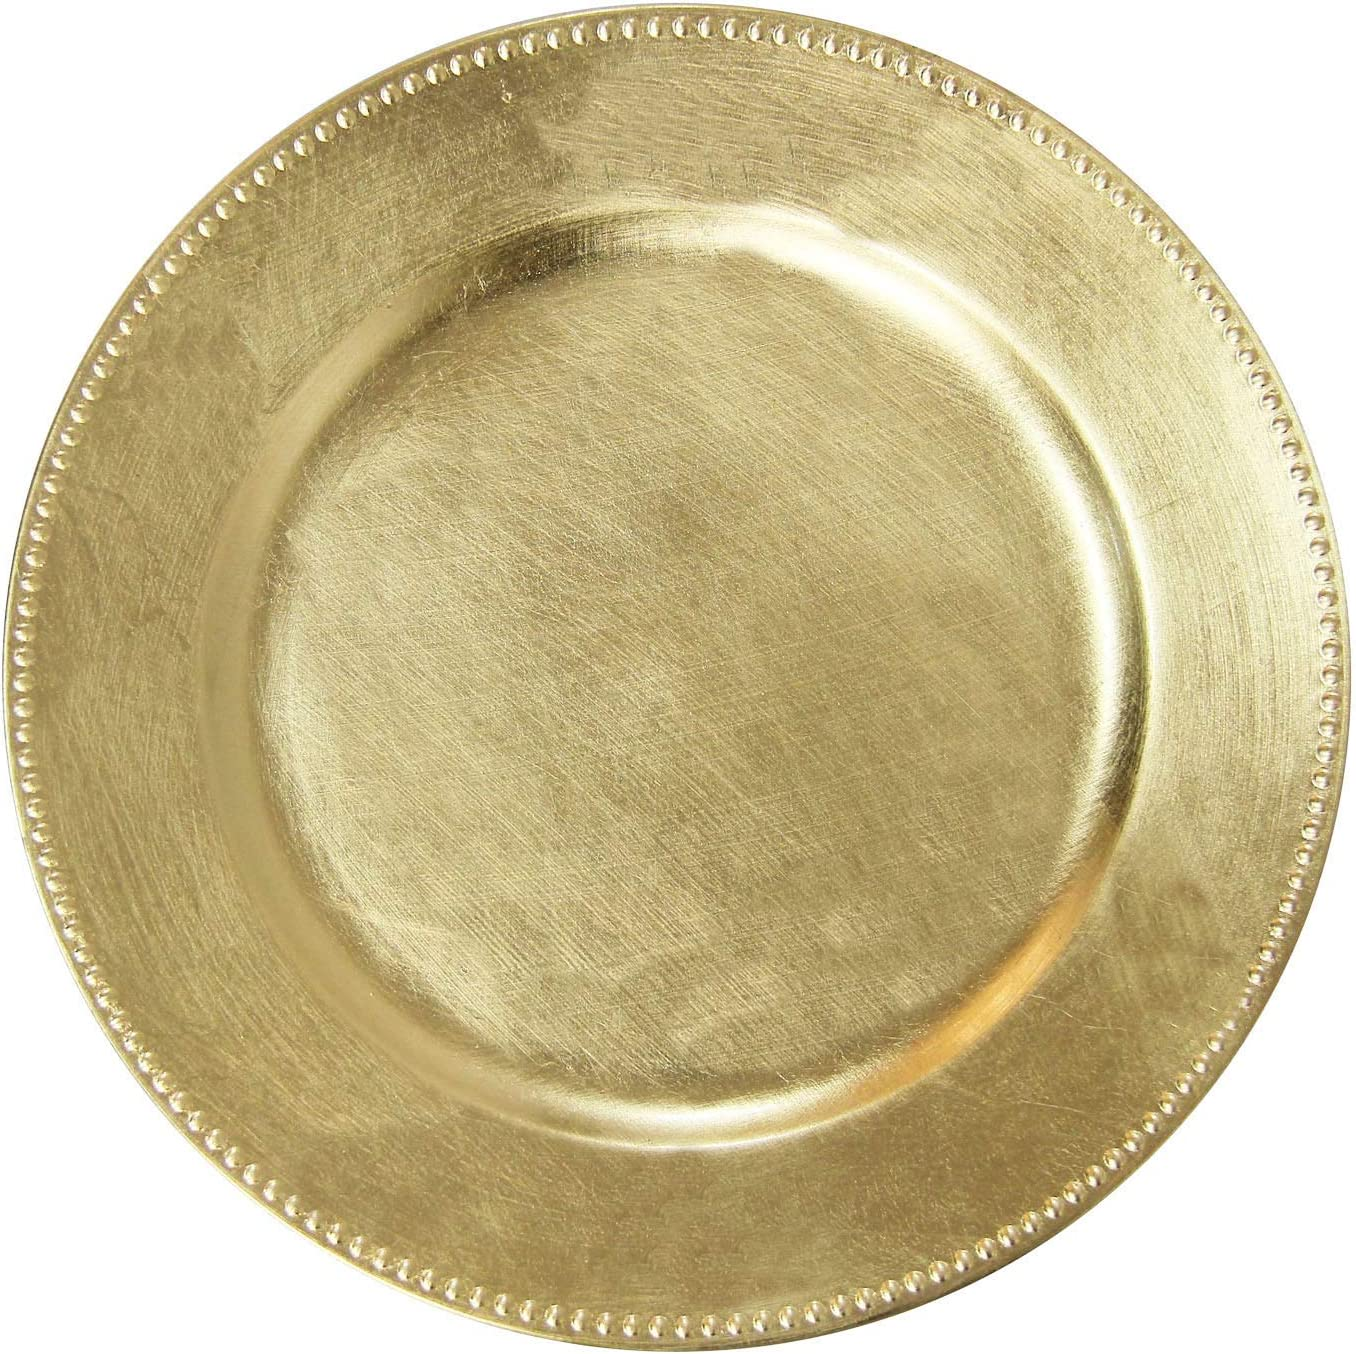 New mail order Gold Plastic Beaded Charger Fixed price for sale Plates - Inch pcs Weddin 13 12 Round